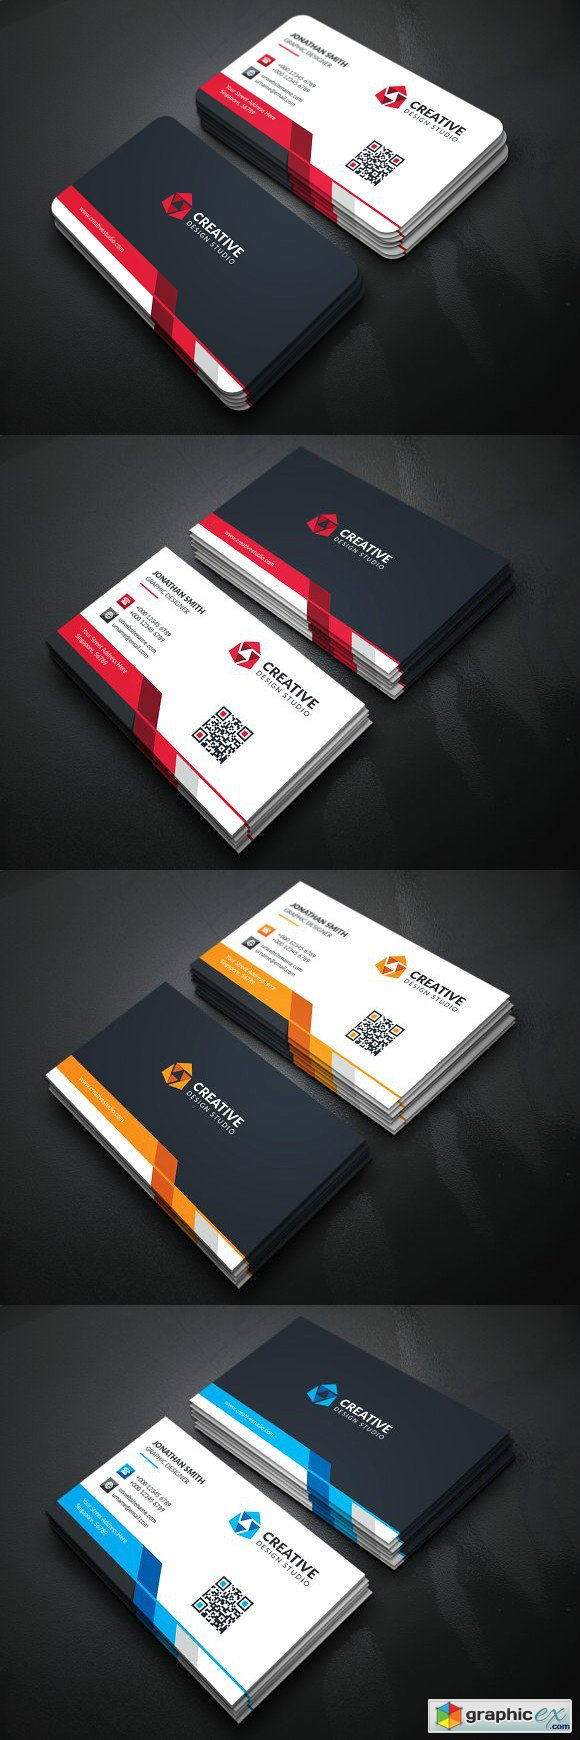 Business Card 1395714